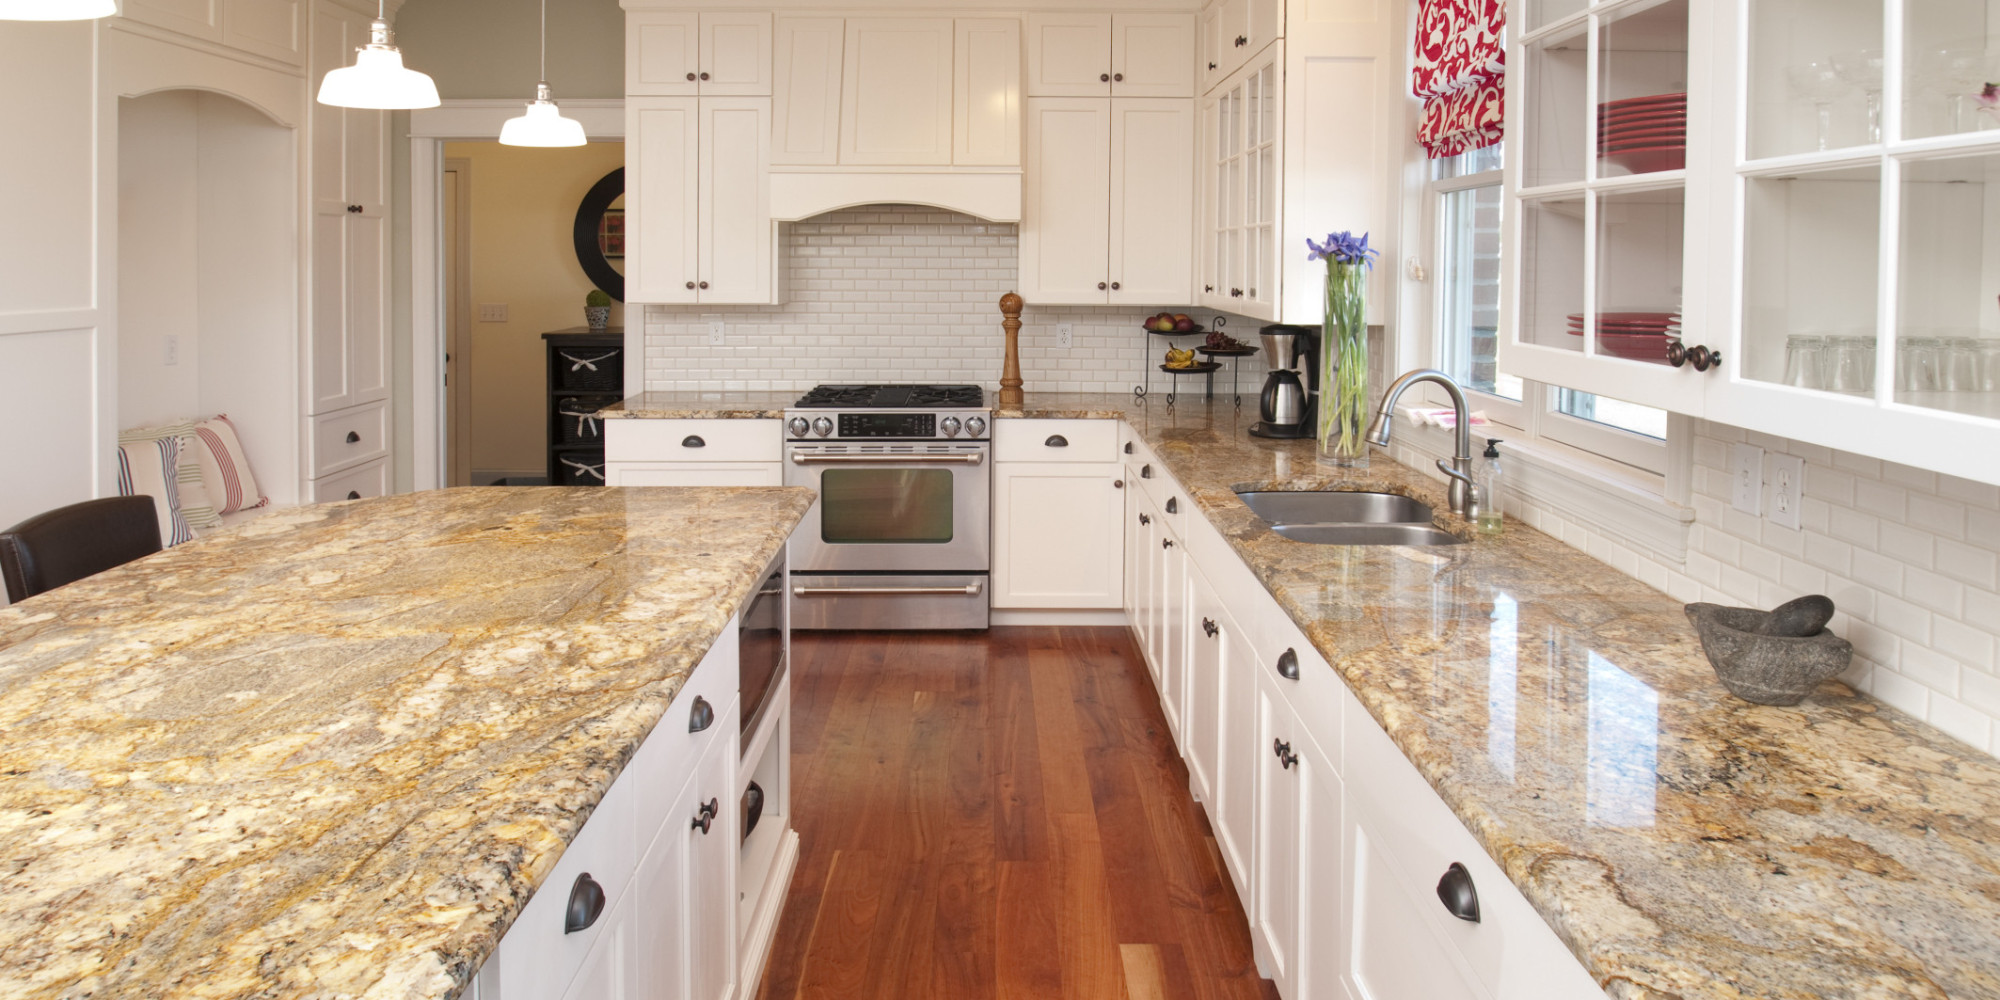 Kitchen Countertop Materials South Africa : Countertop Materials Youve Never Considered HuffPost